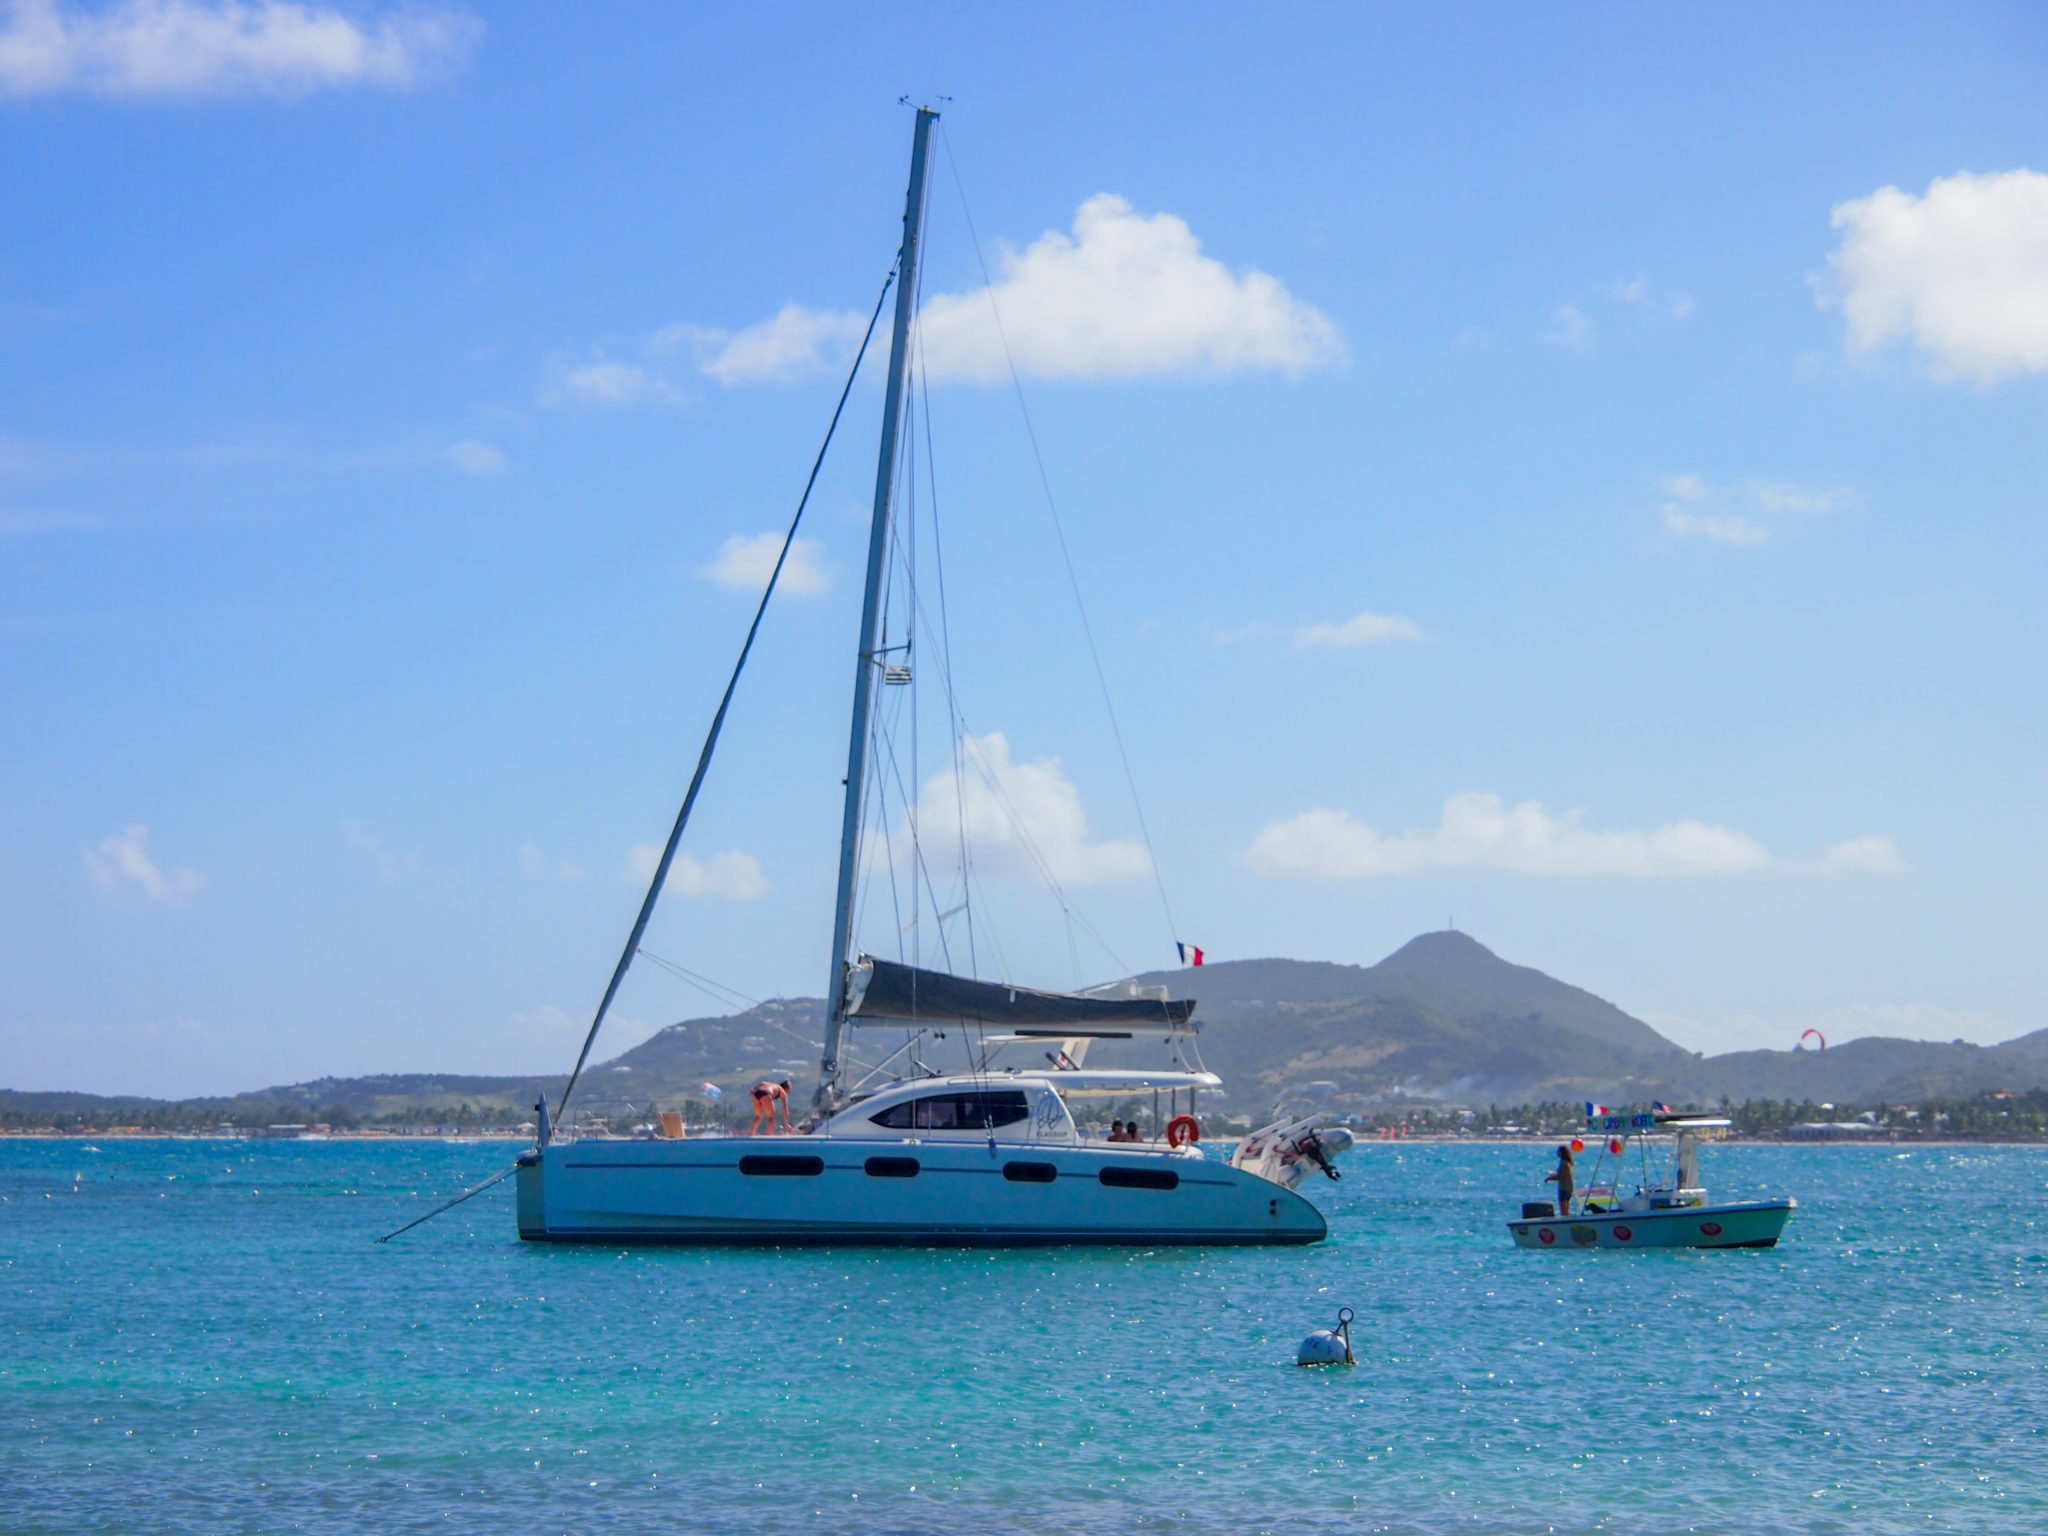 Lily's Ice Cream Boat Sails On in St. Martin